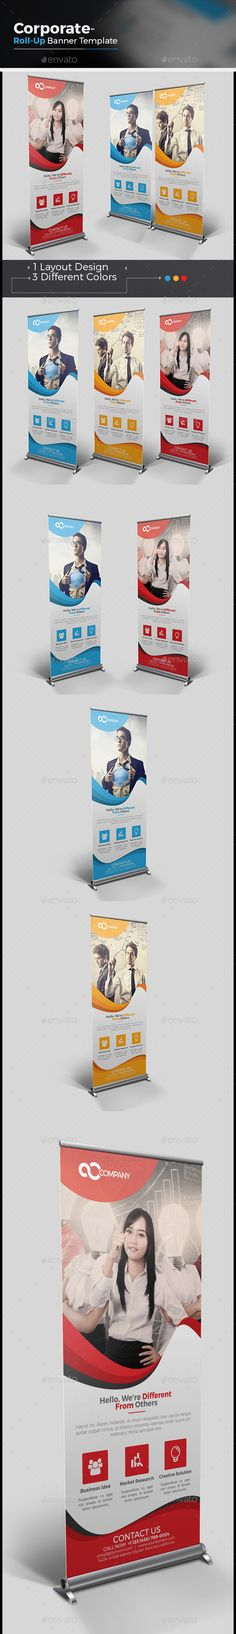 Corporate Roll-up Banner Template Vector EPS, AI #design Download: http://graphicriver.net/item/corporate-rollup-banner/14445287?ref=ksioks